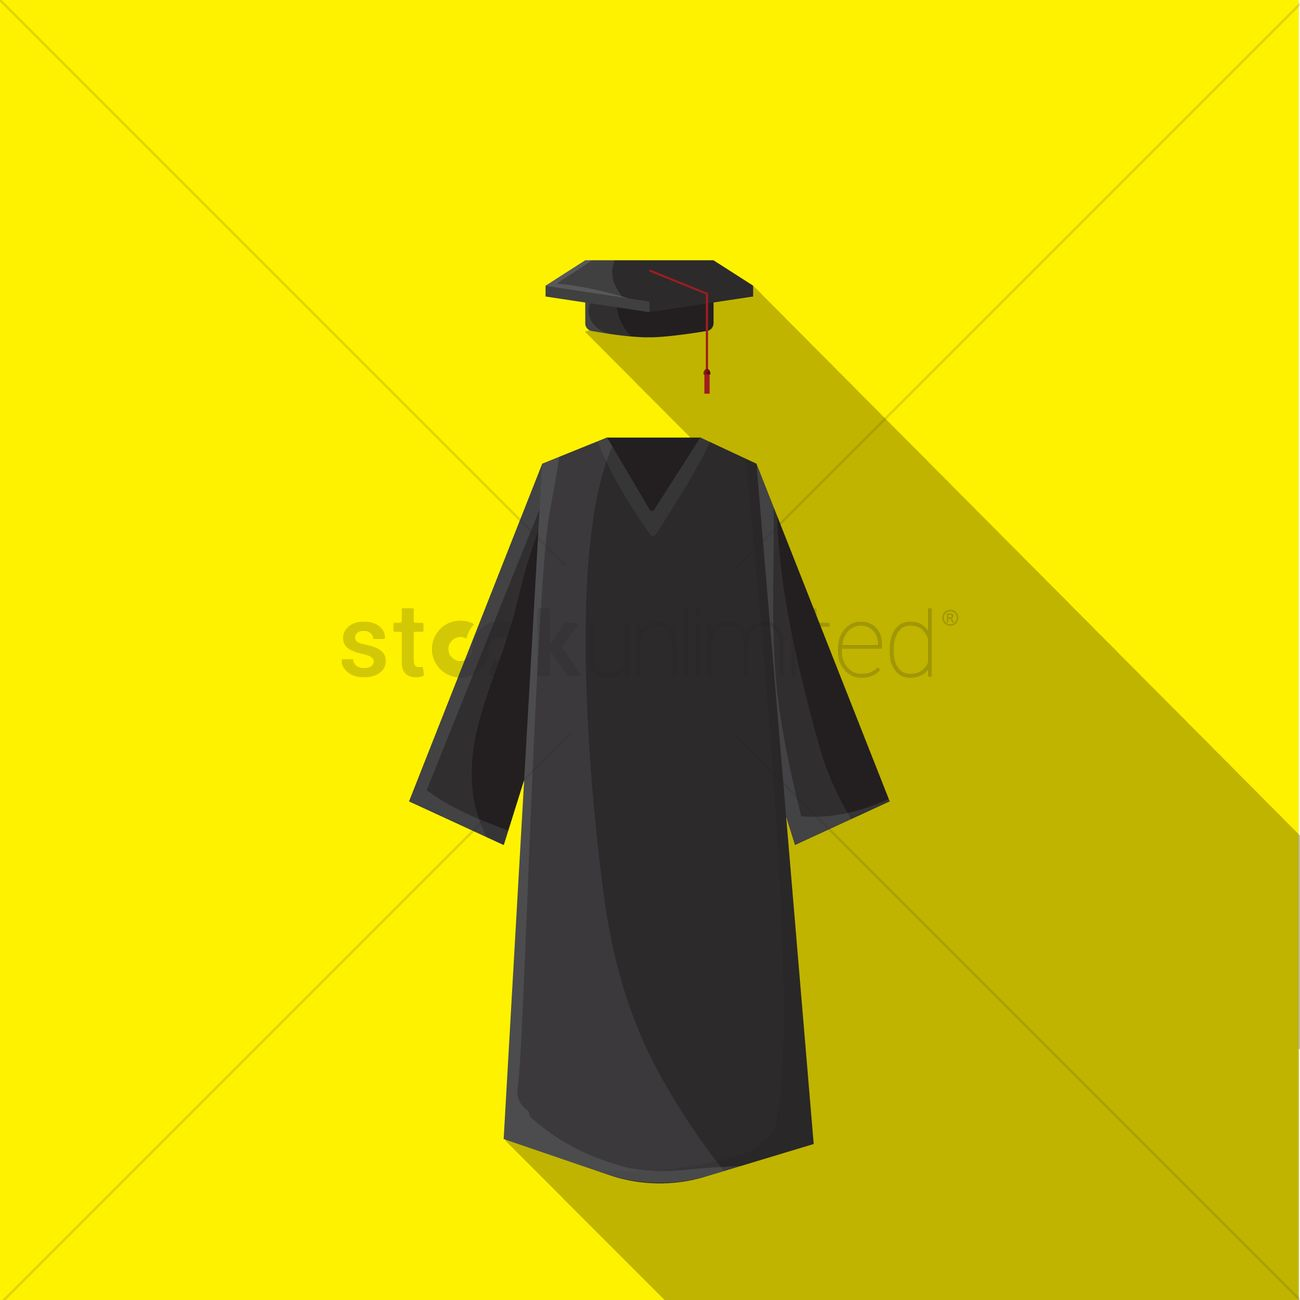 Graduation gown with hat Vector Image - 1255626 | StockUnlimited